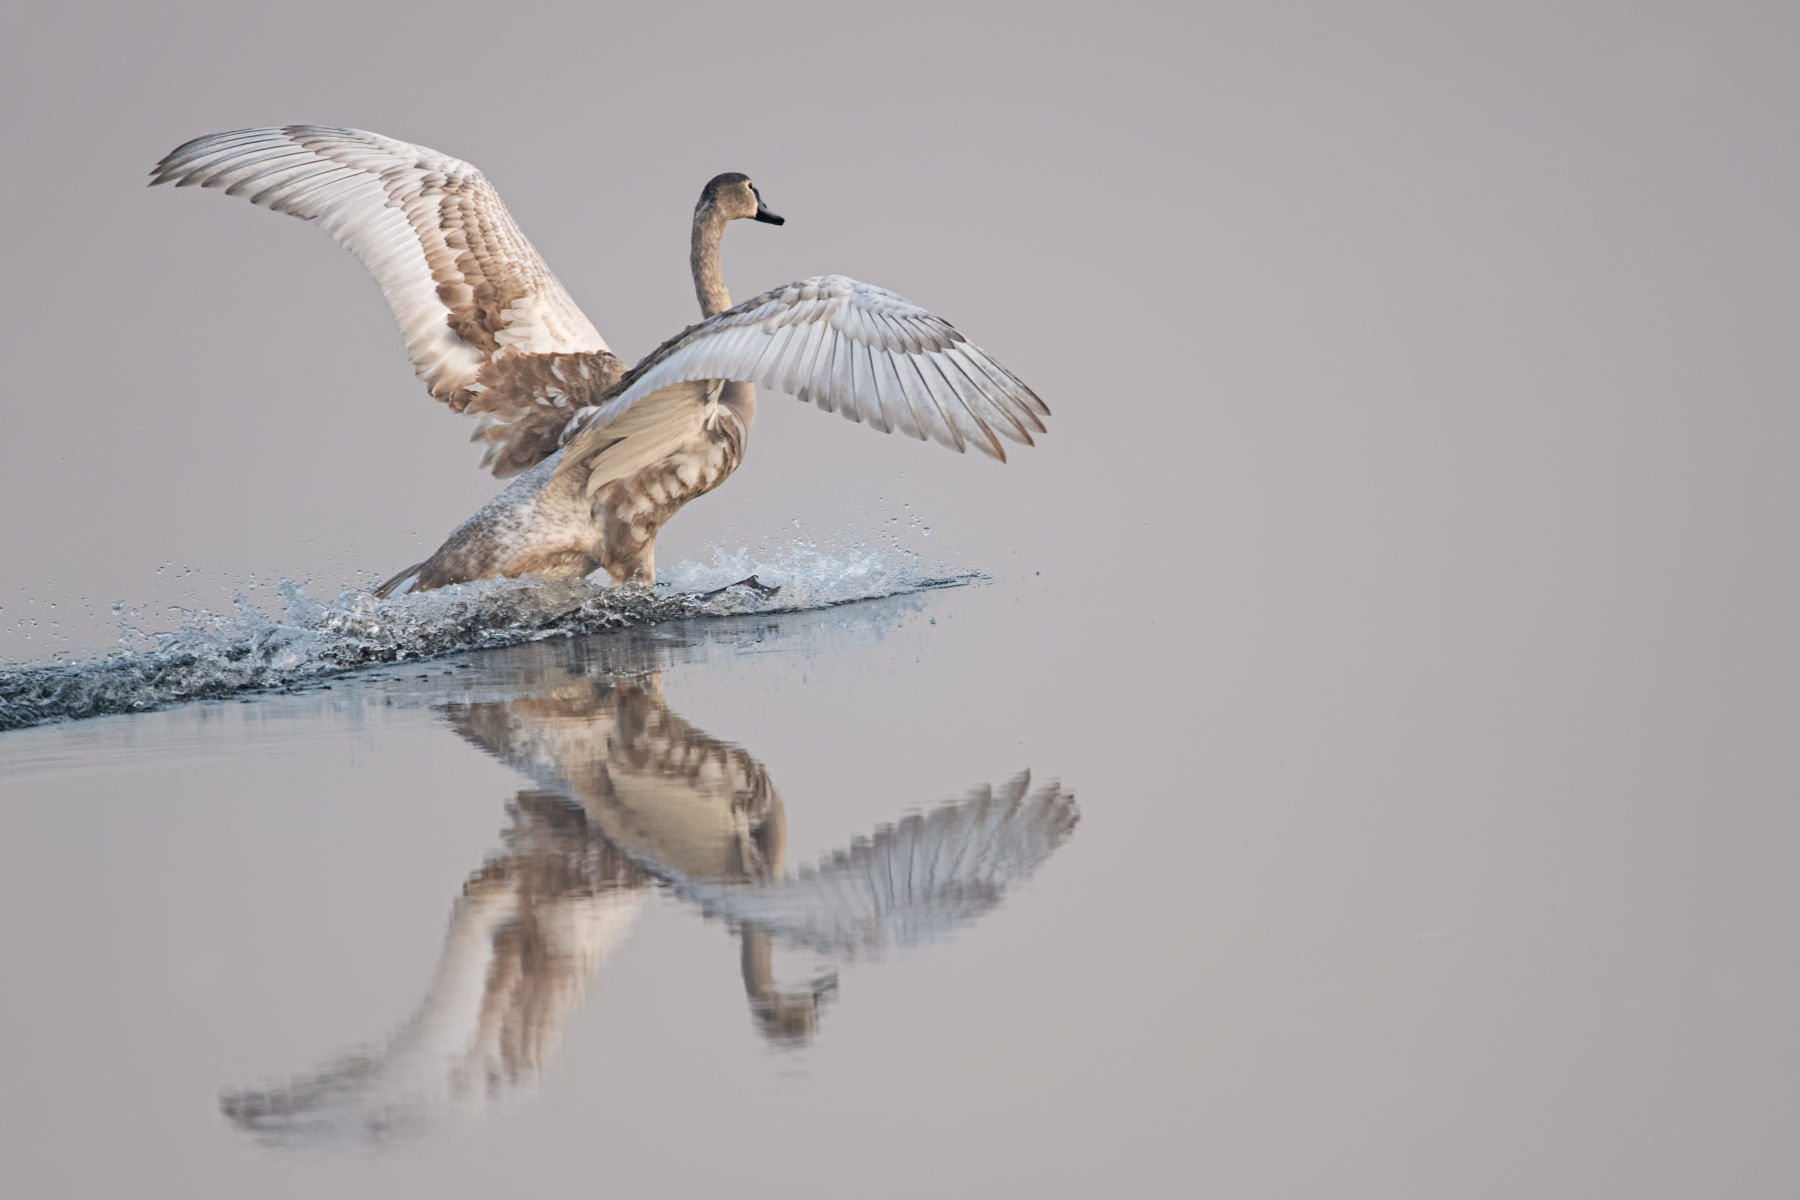 juvenile swan landing on smooth water of misty pond